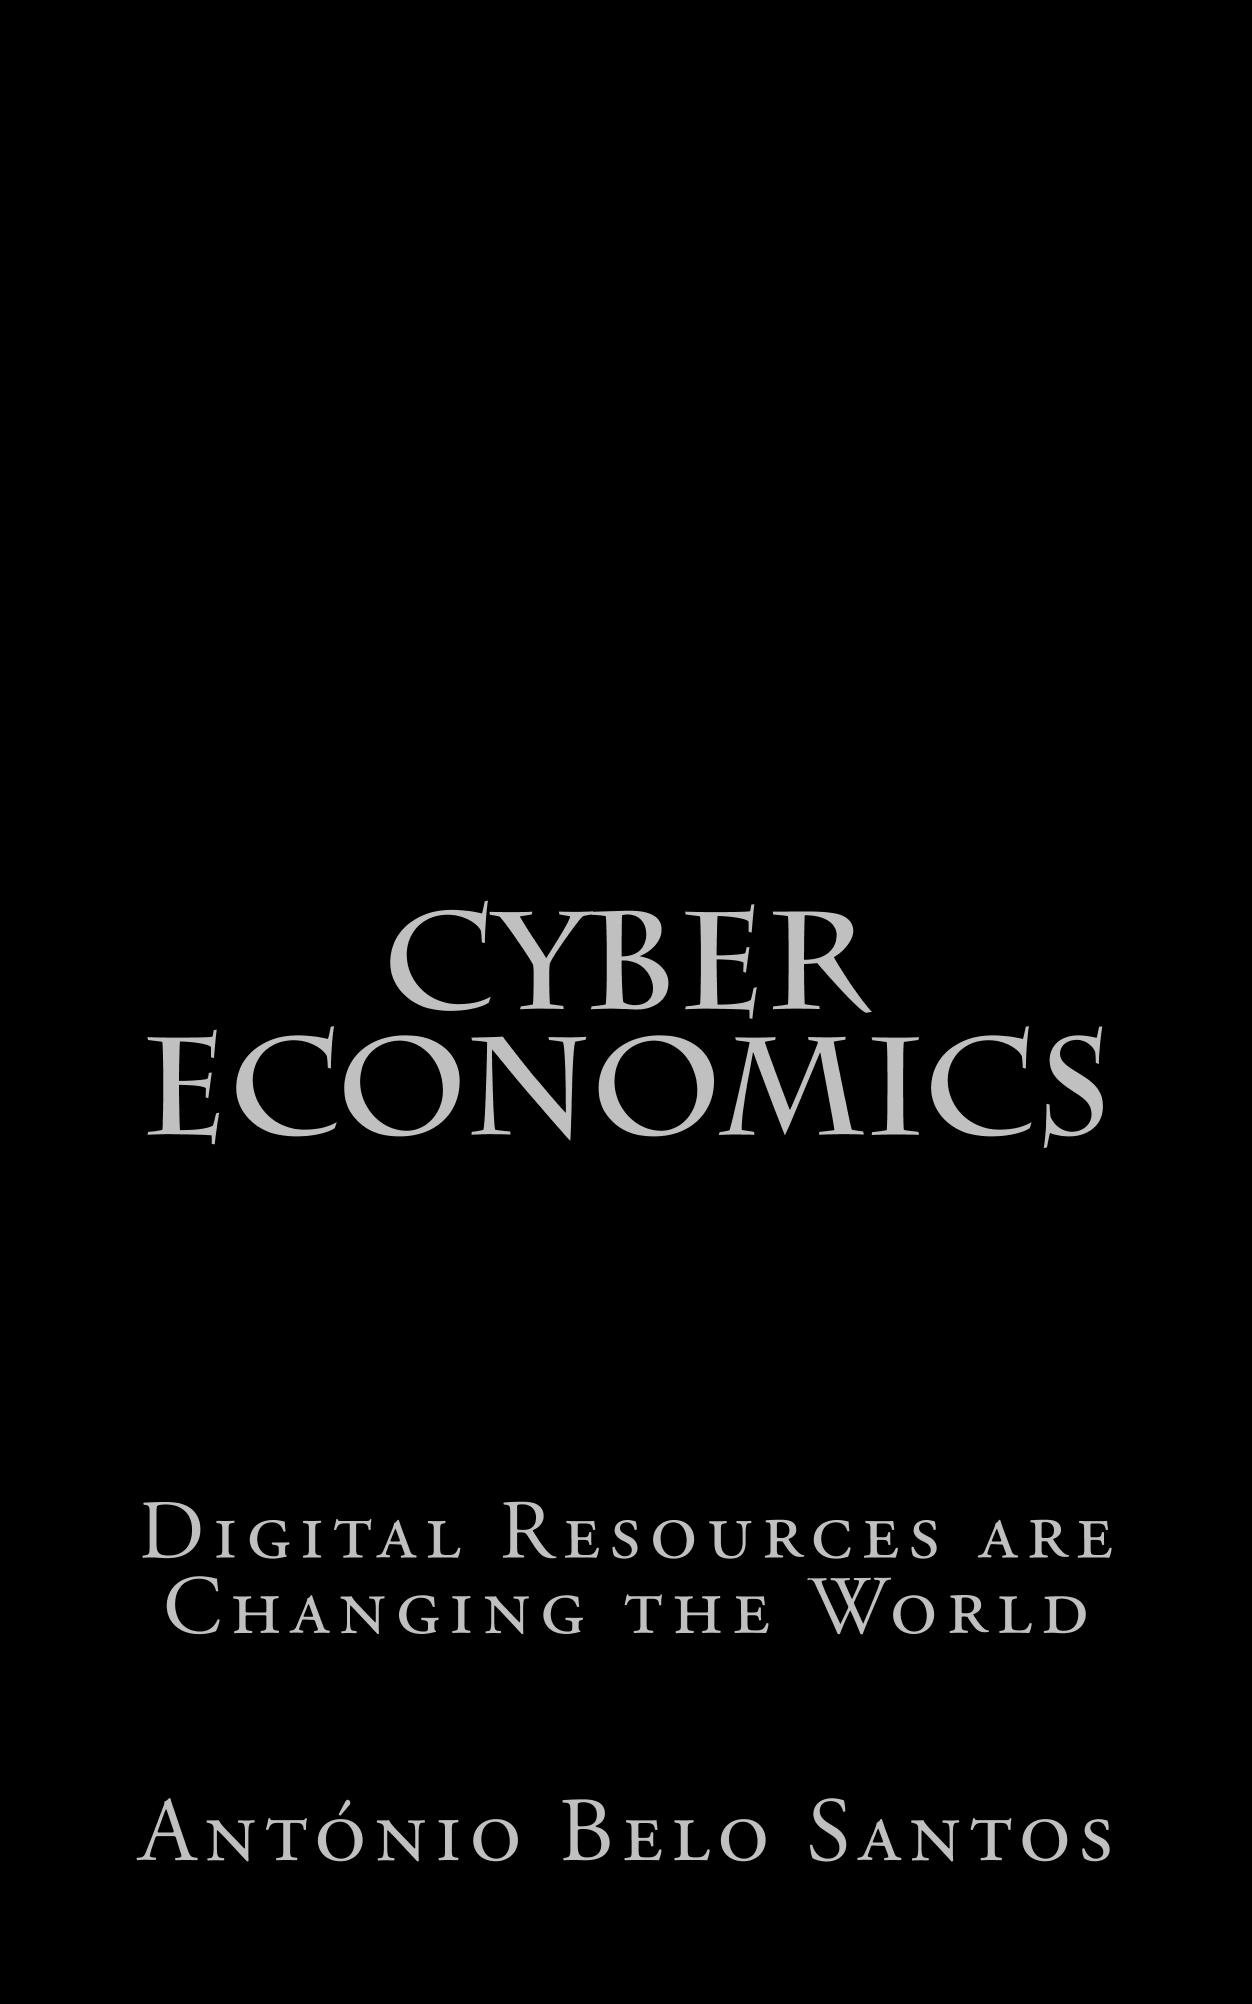 Cyber Economics: Digital Resources are Changing the World